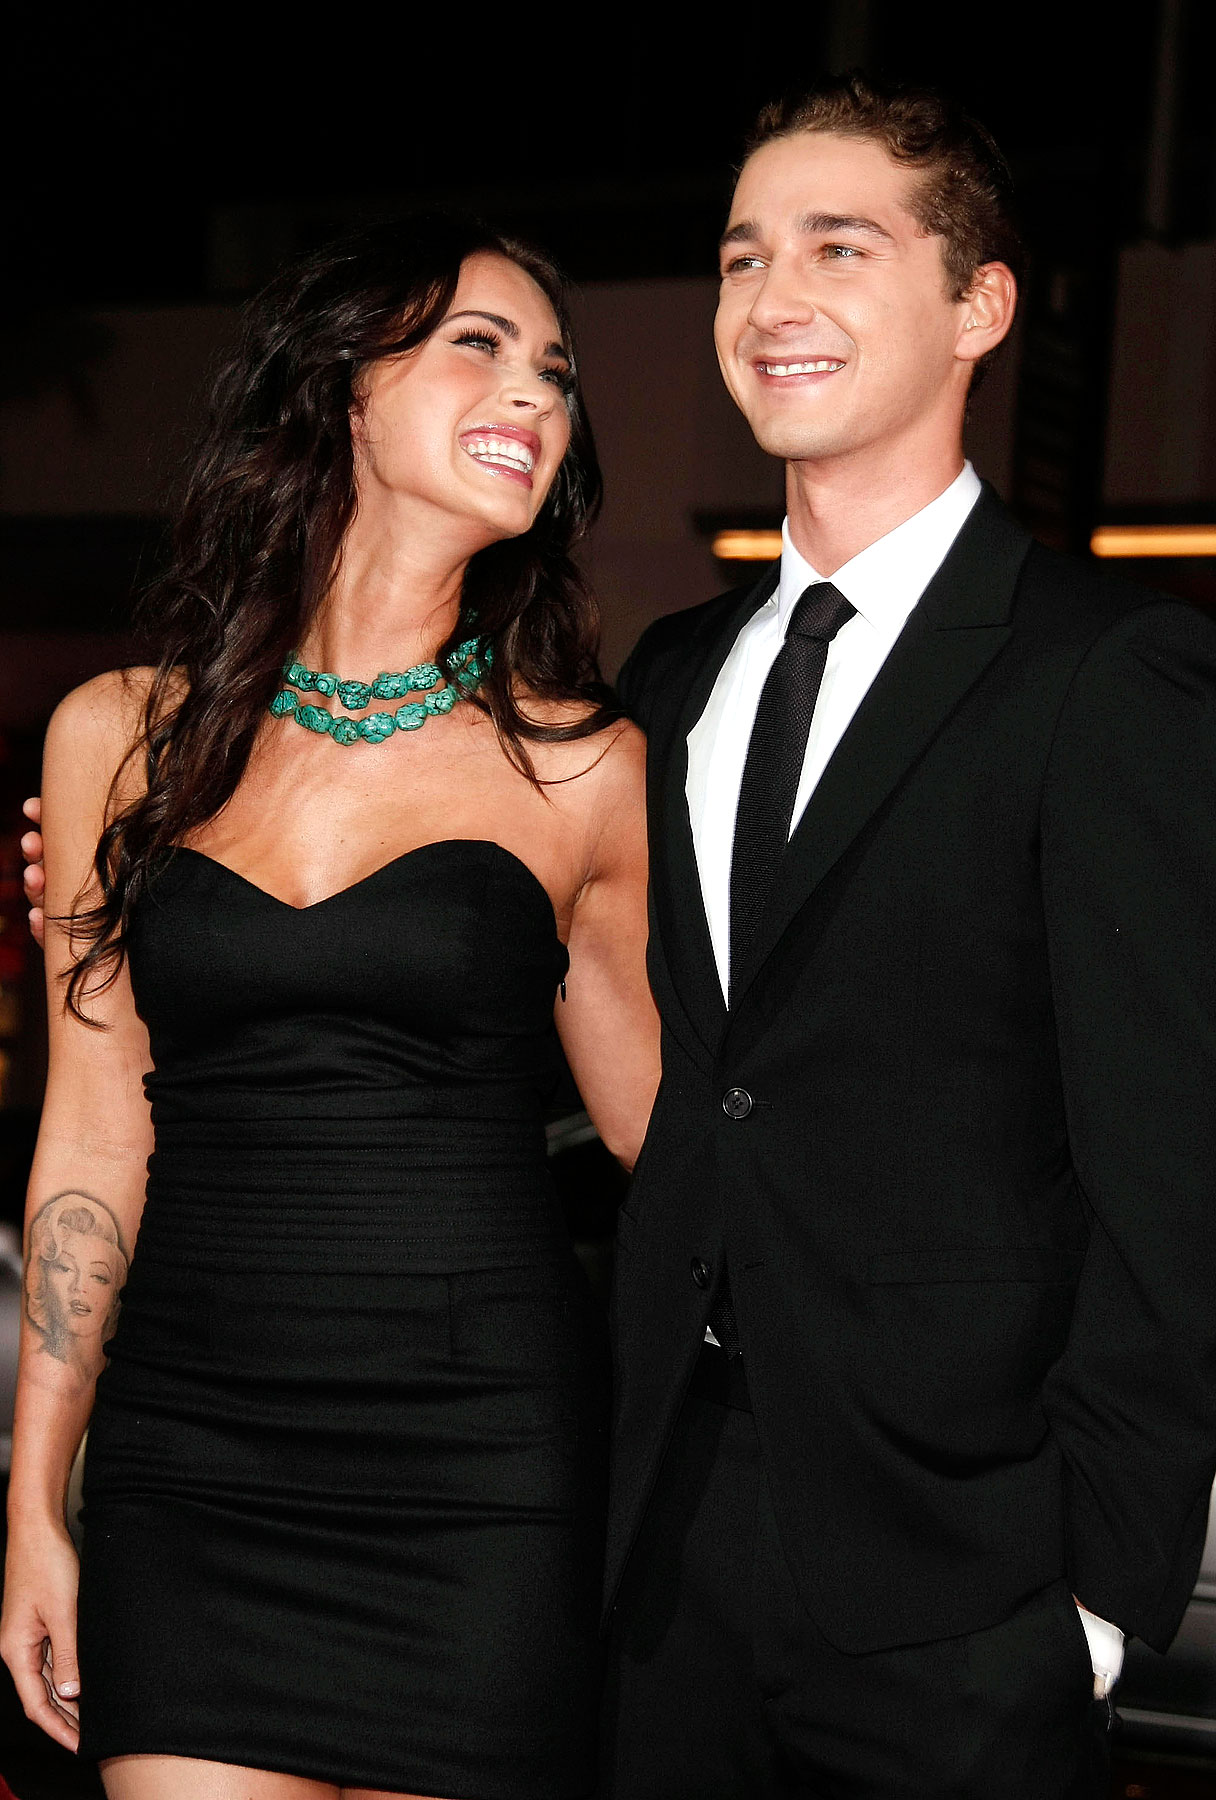 Megan Fox Talks Making Out With Shia LaBeouf